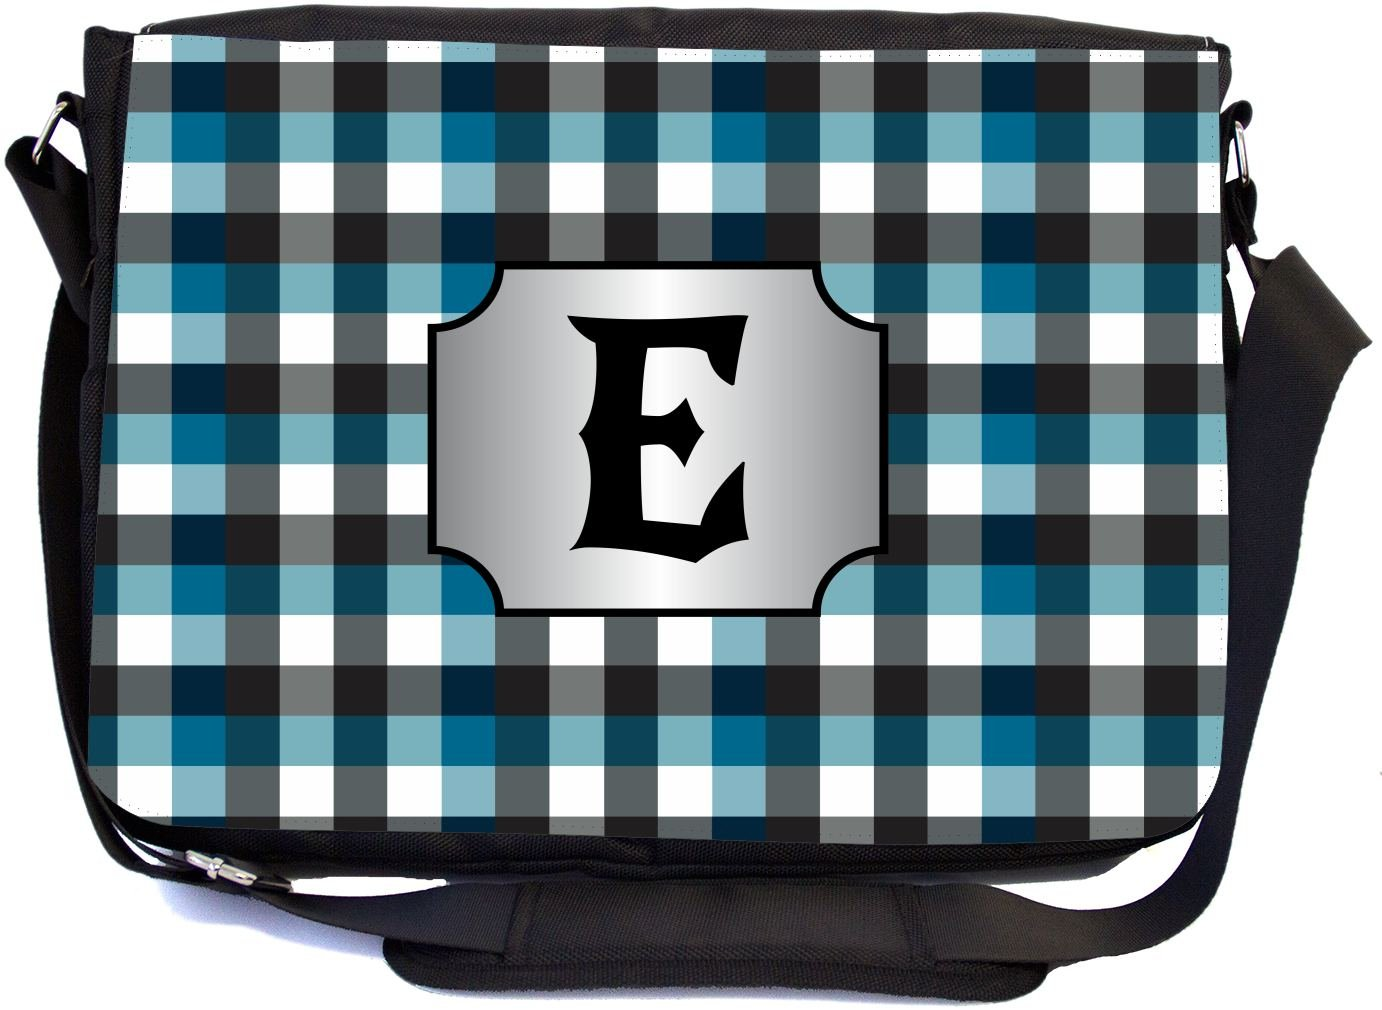 Rikki Knight LetterE Initial Blue Black Grey Plaid Monogrammed Design Messenger School Bag mbcp-cond45983